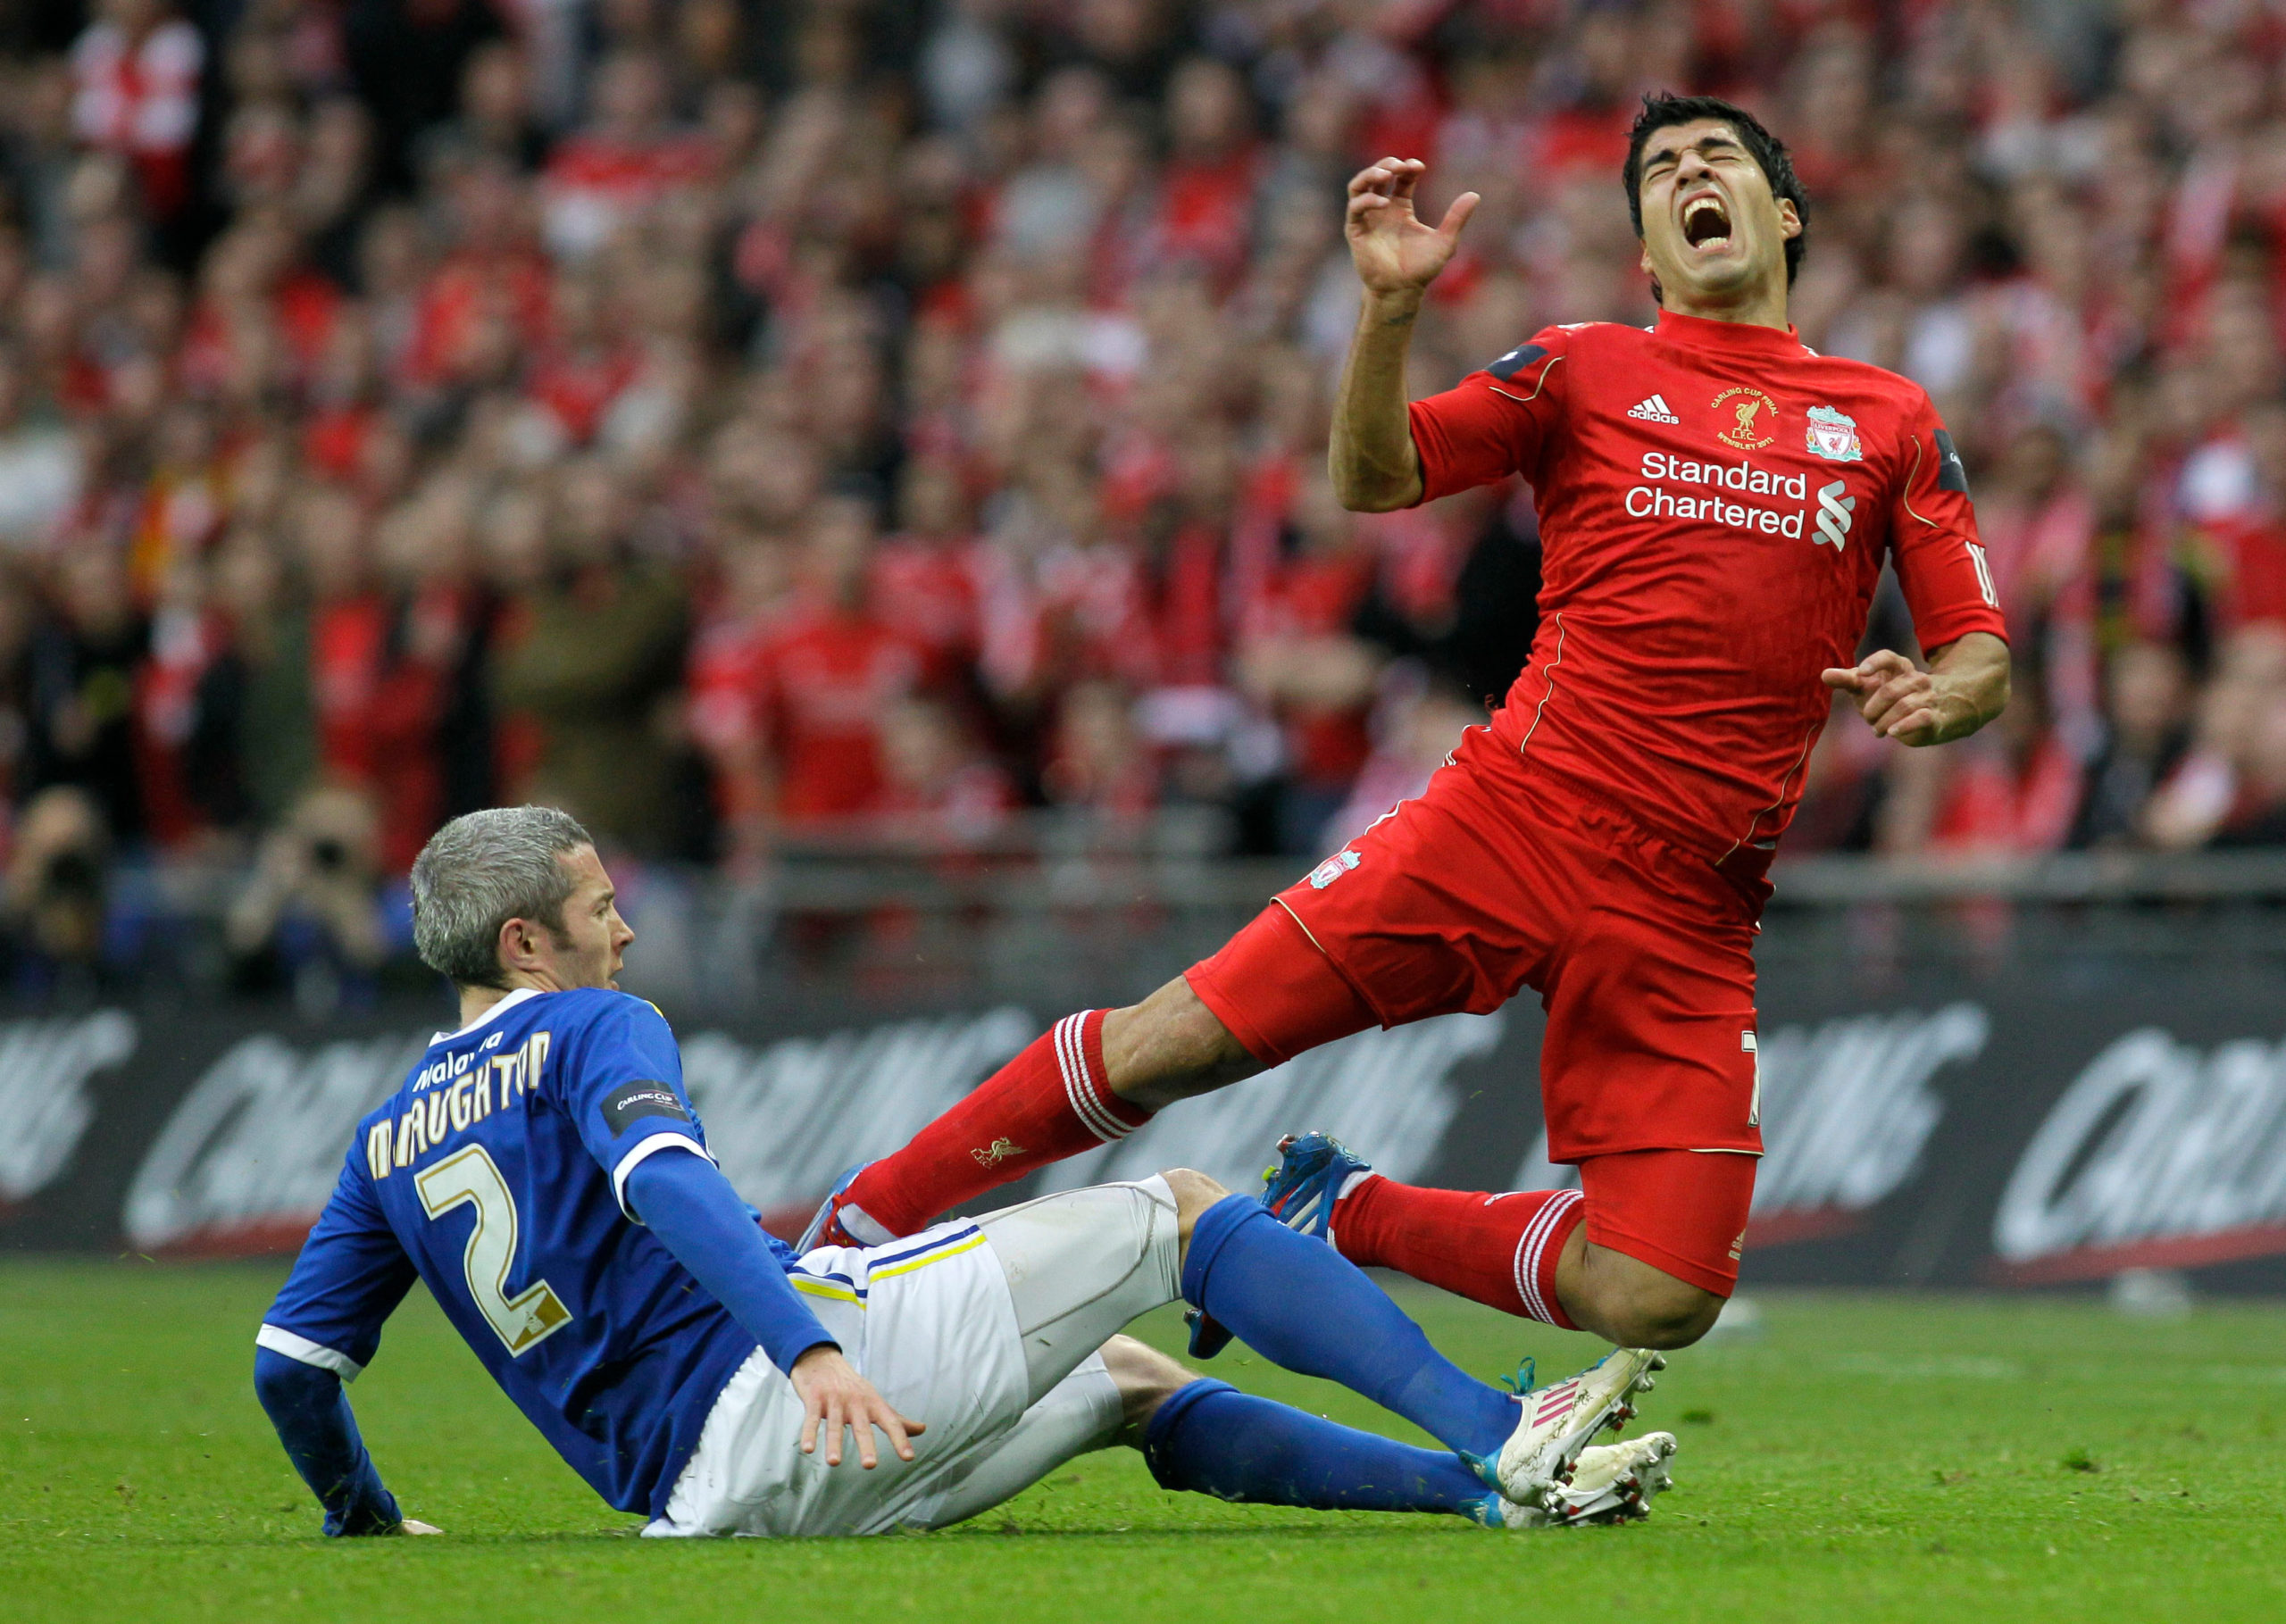 Cardiff City's Kevin McNaughton, left, tackles Liverpool's Luis Suarez during the English League Cup final in 2012.